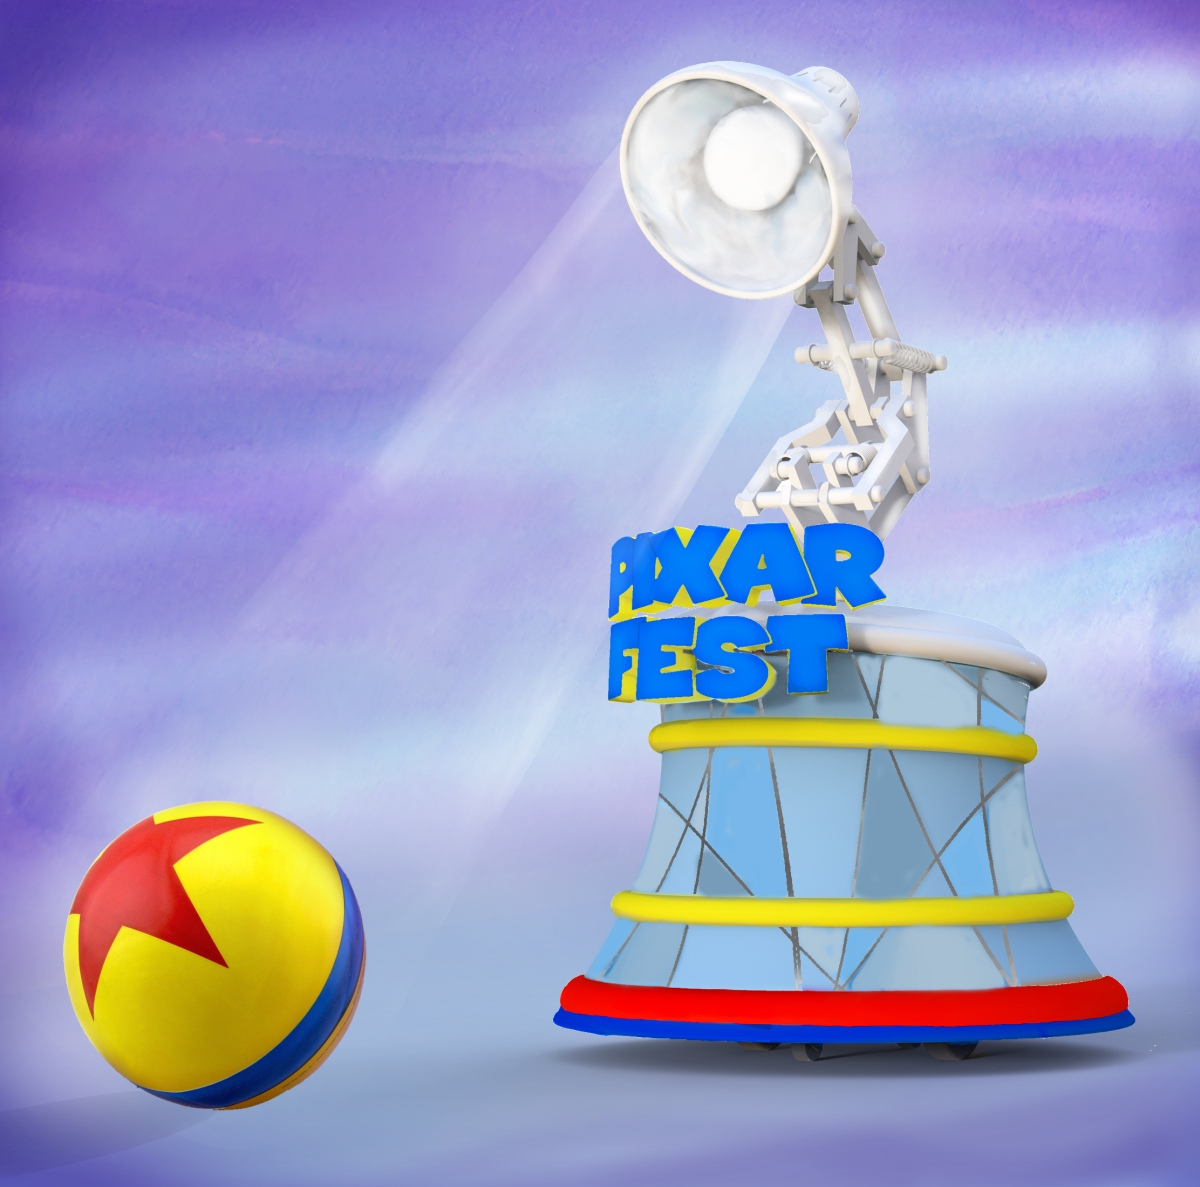 Disney Announces Memorable New Story Elements that Add to the Fun at the Pixar Play Parade During Pixar FestCelebration